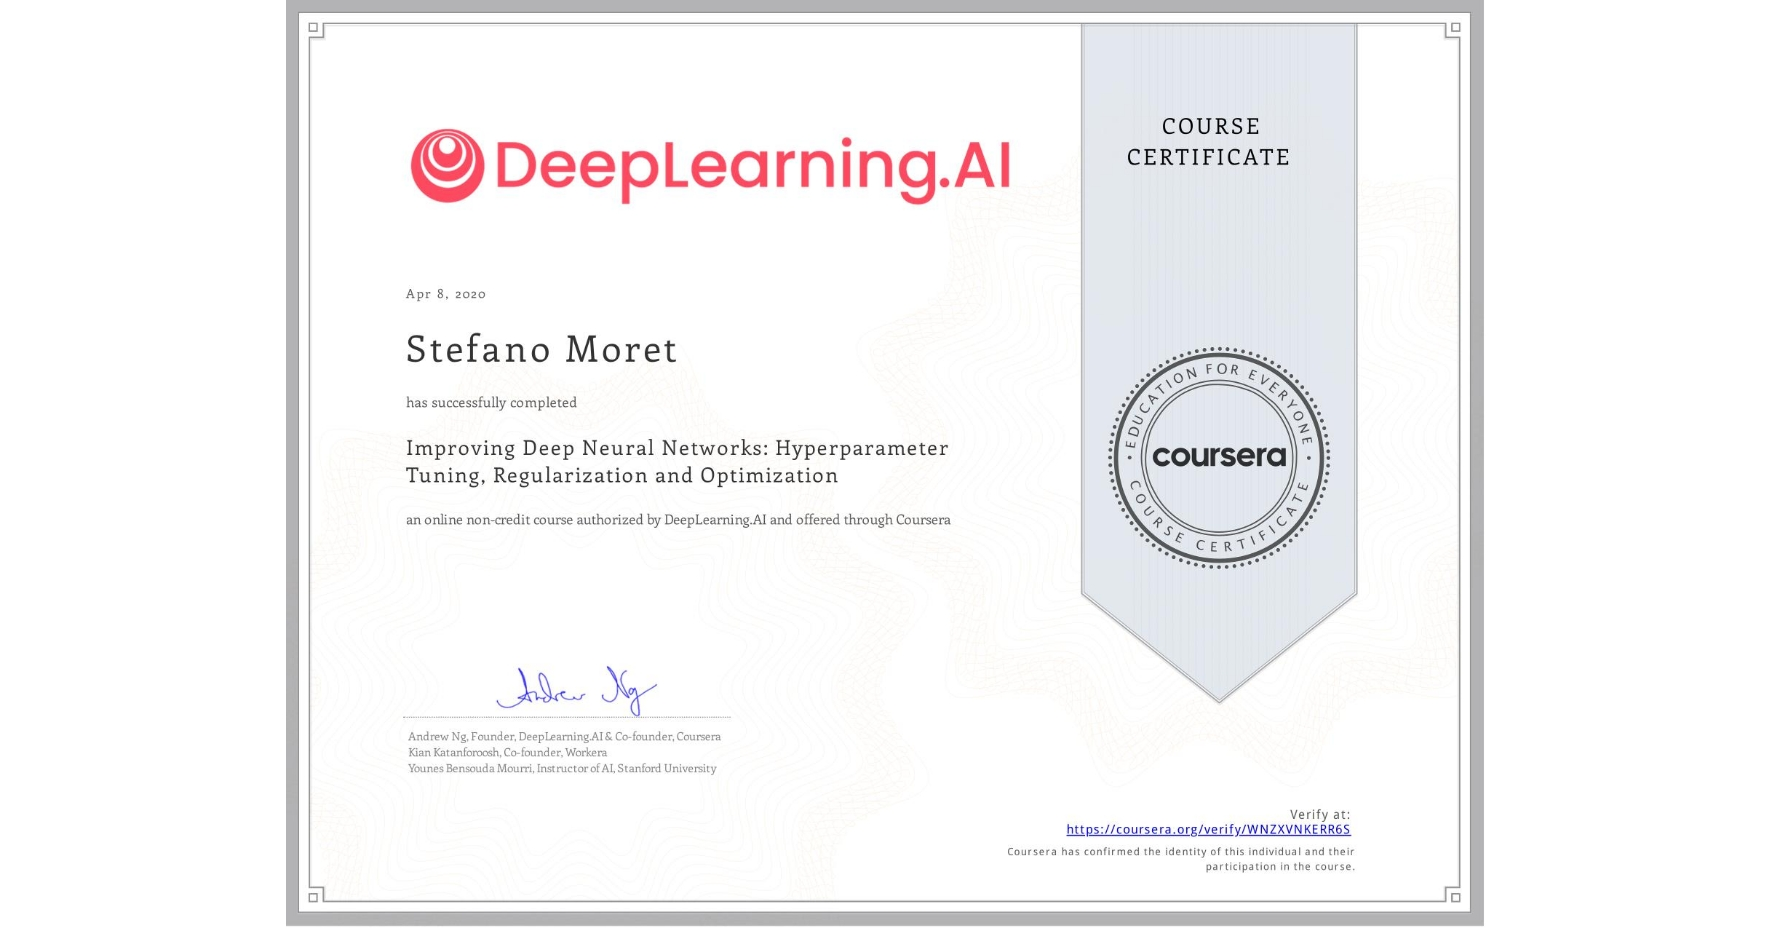 View certificate for Stefano Moret, Improving Deep Neural Networks: Hyperparameter Tuning, Regularization and Optimization, an online non-credit course authorized by DeepLearning.AI and offered through Coursera